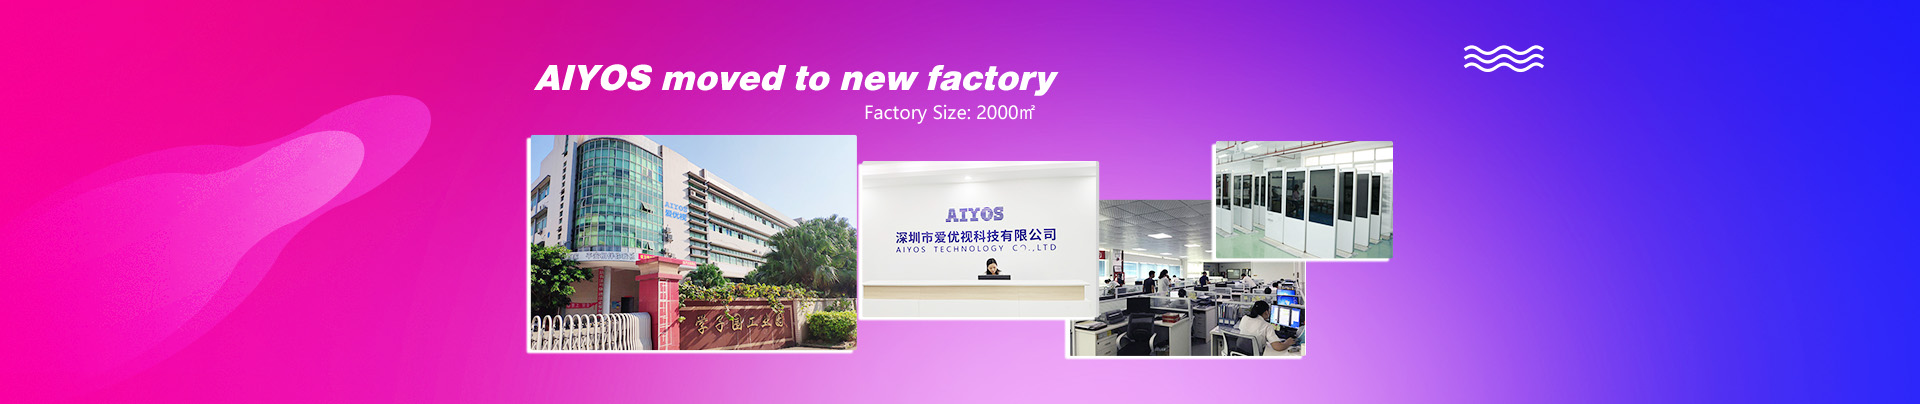 AIYOS moved to new factory